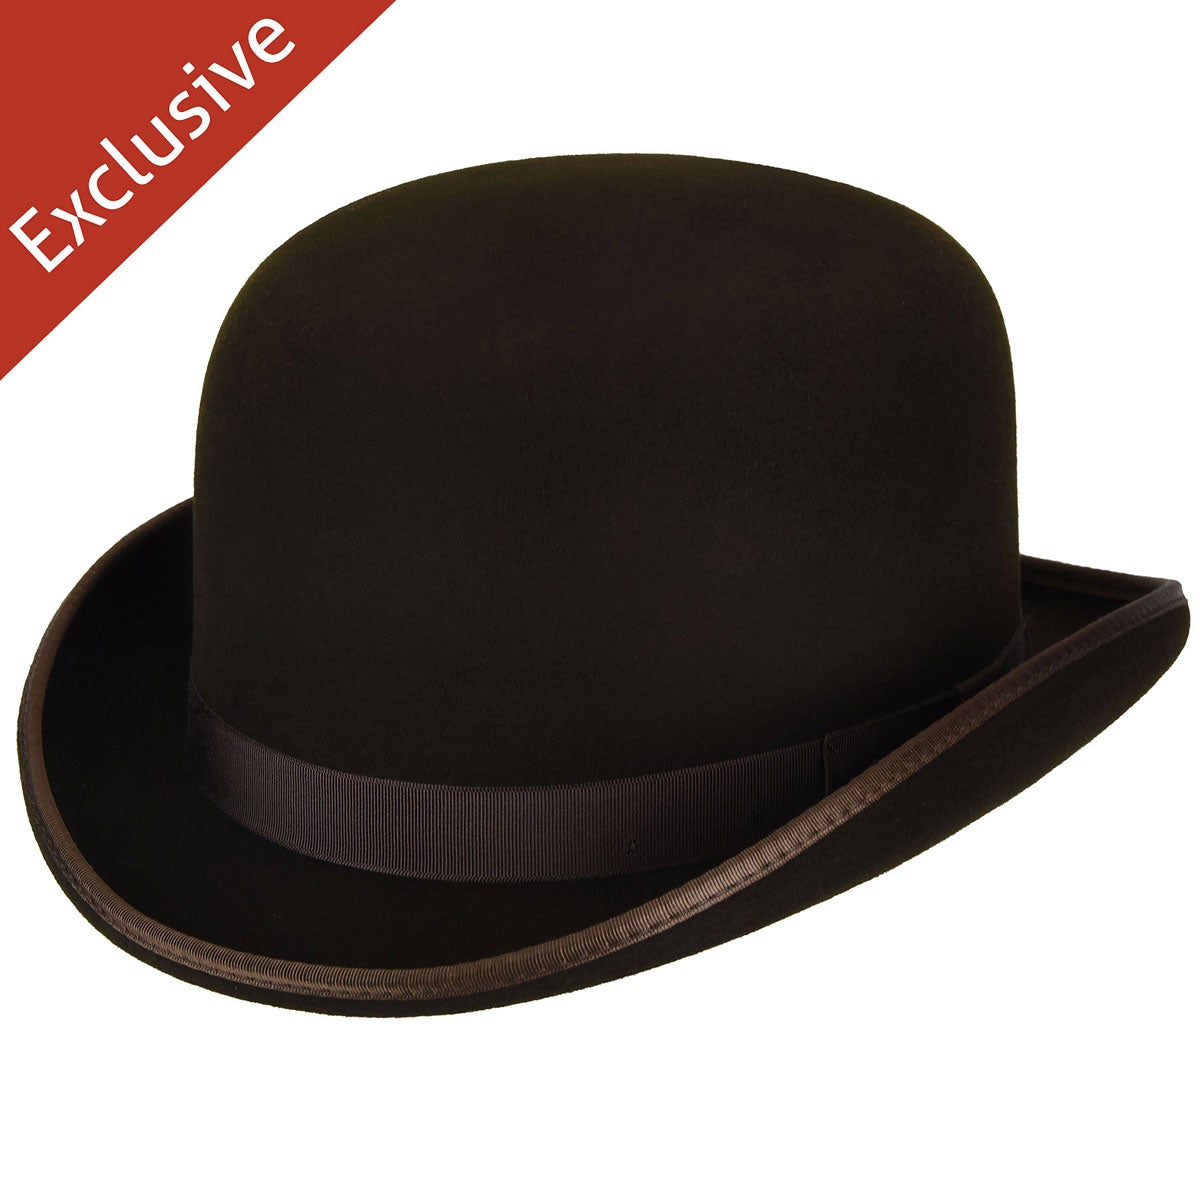 Hats.com Steed Derby Hat - Exclusive in Brown